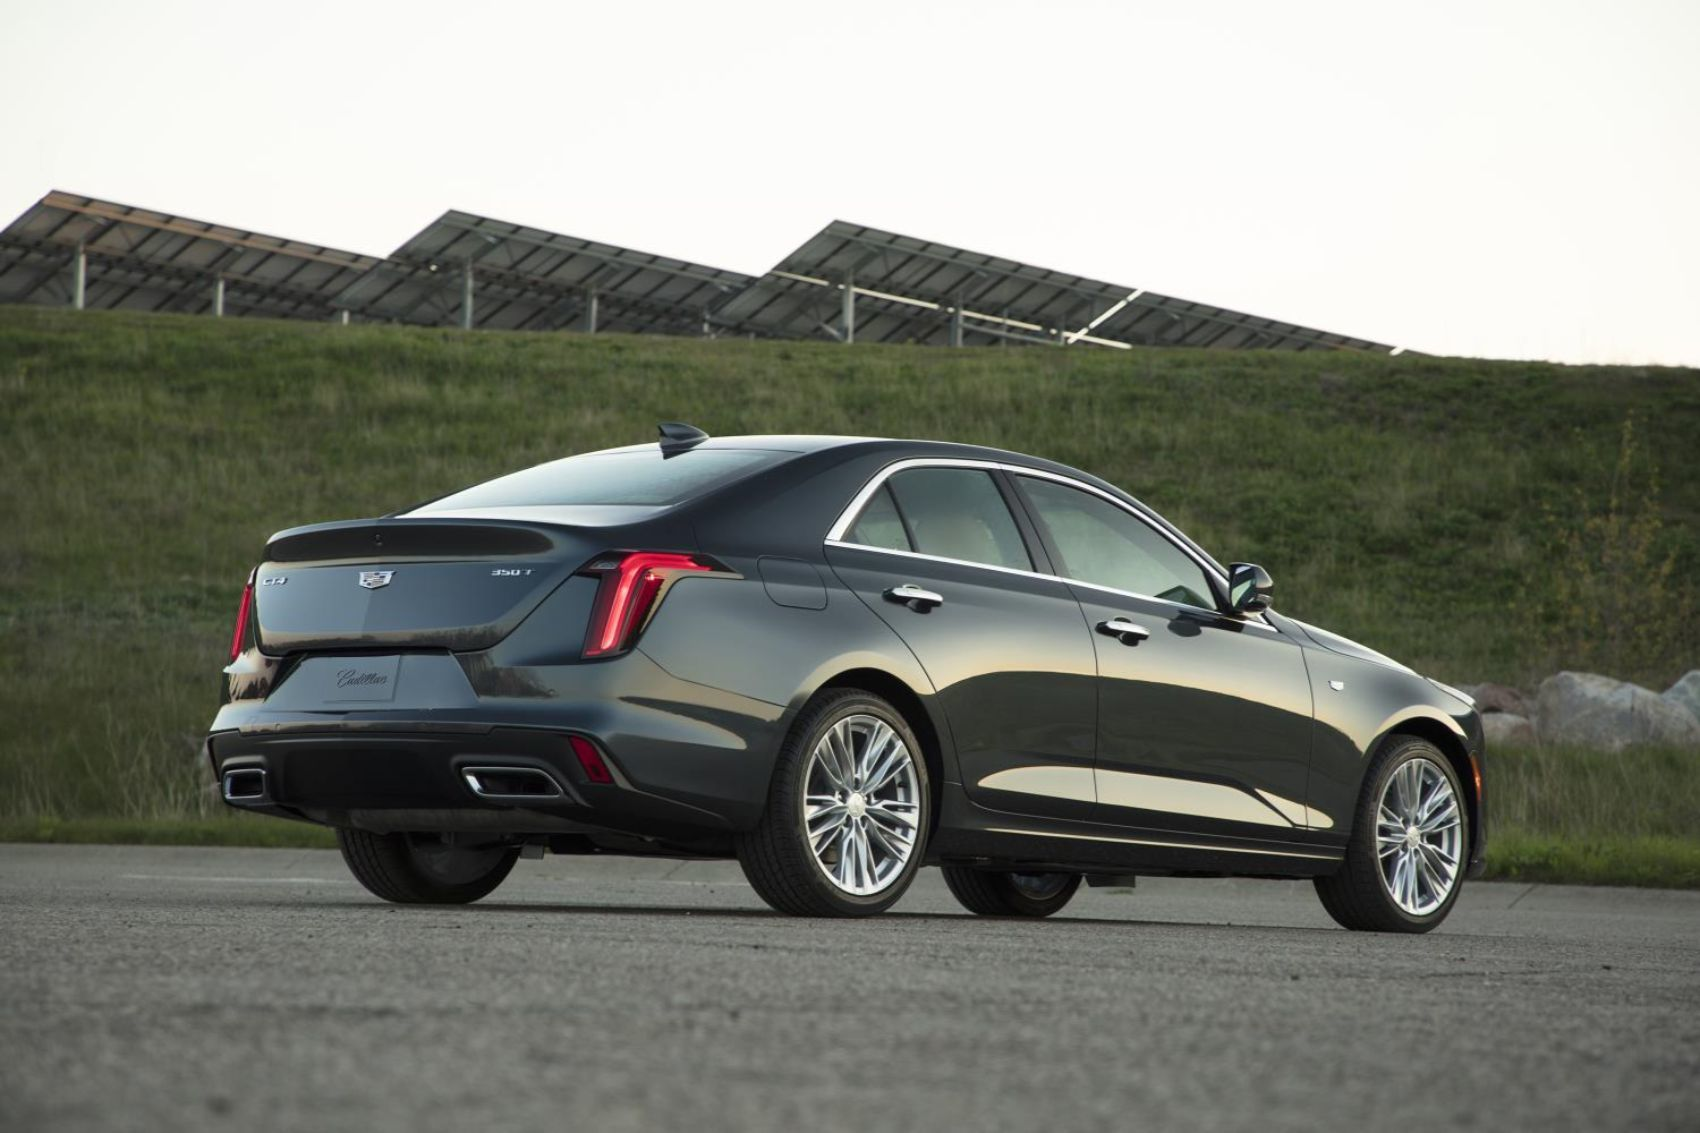 78 All New Cadillac Ct4 2020 Configurations by Cadillac Ct4 2020